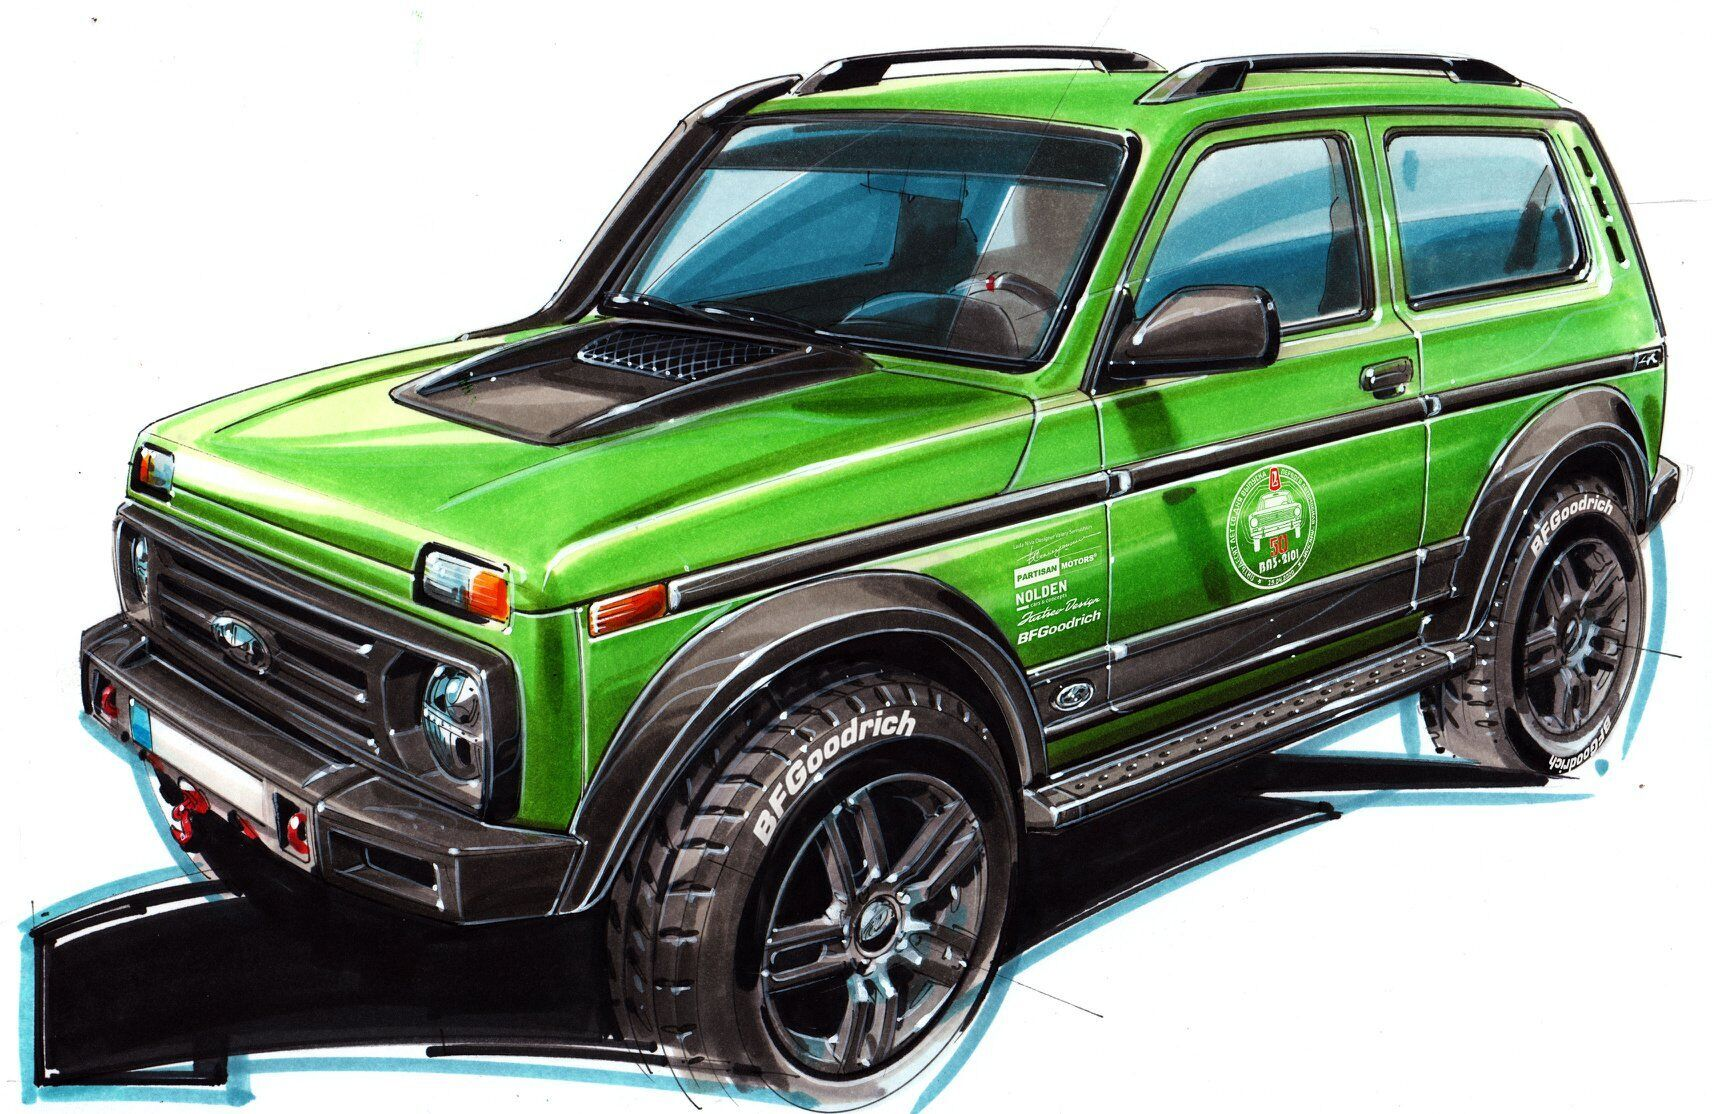 Lada 4x4 50th Anniversary Limited Edition. Фото: